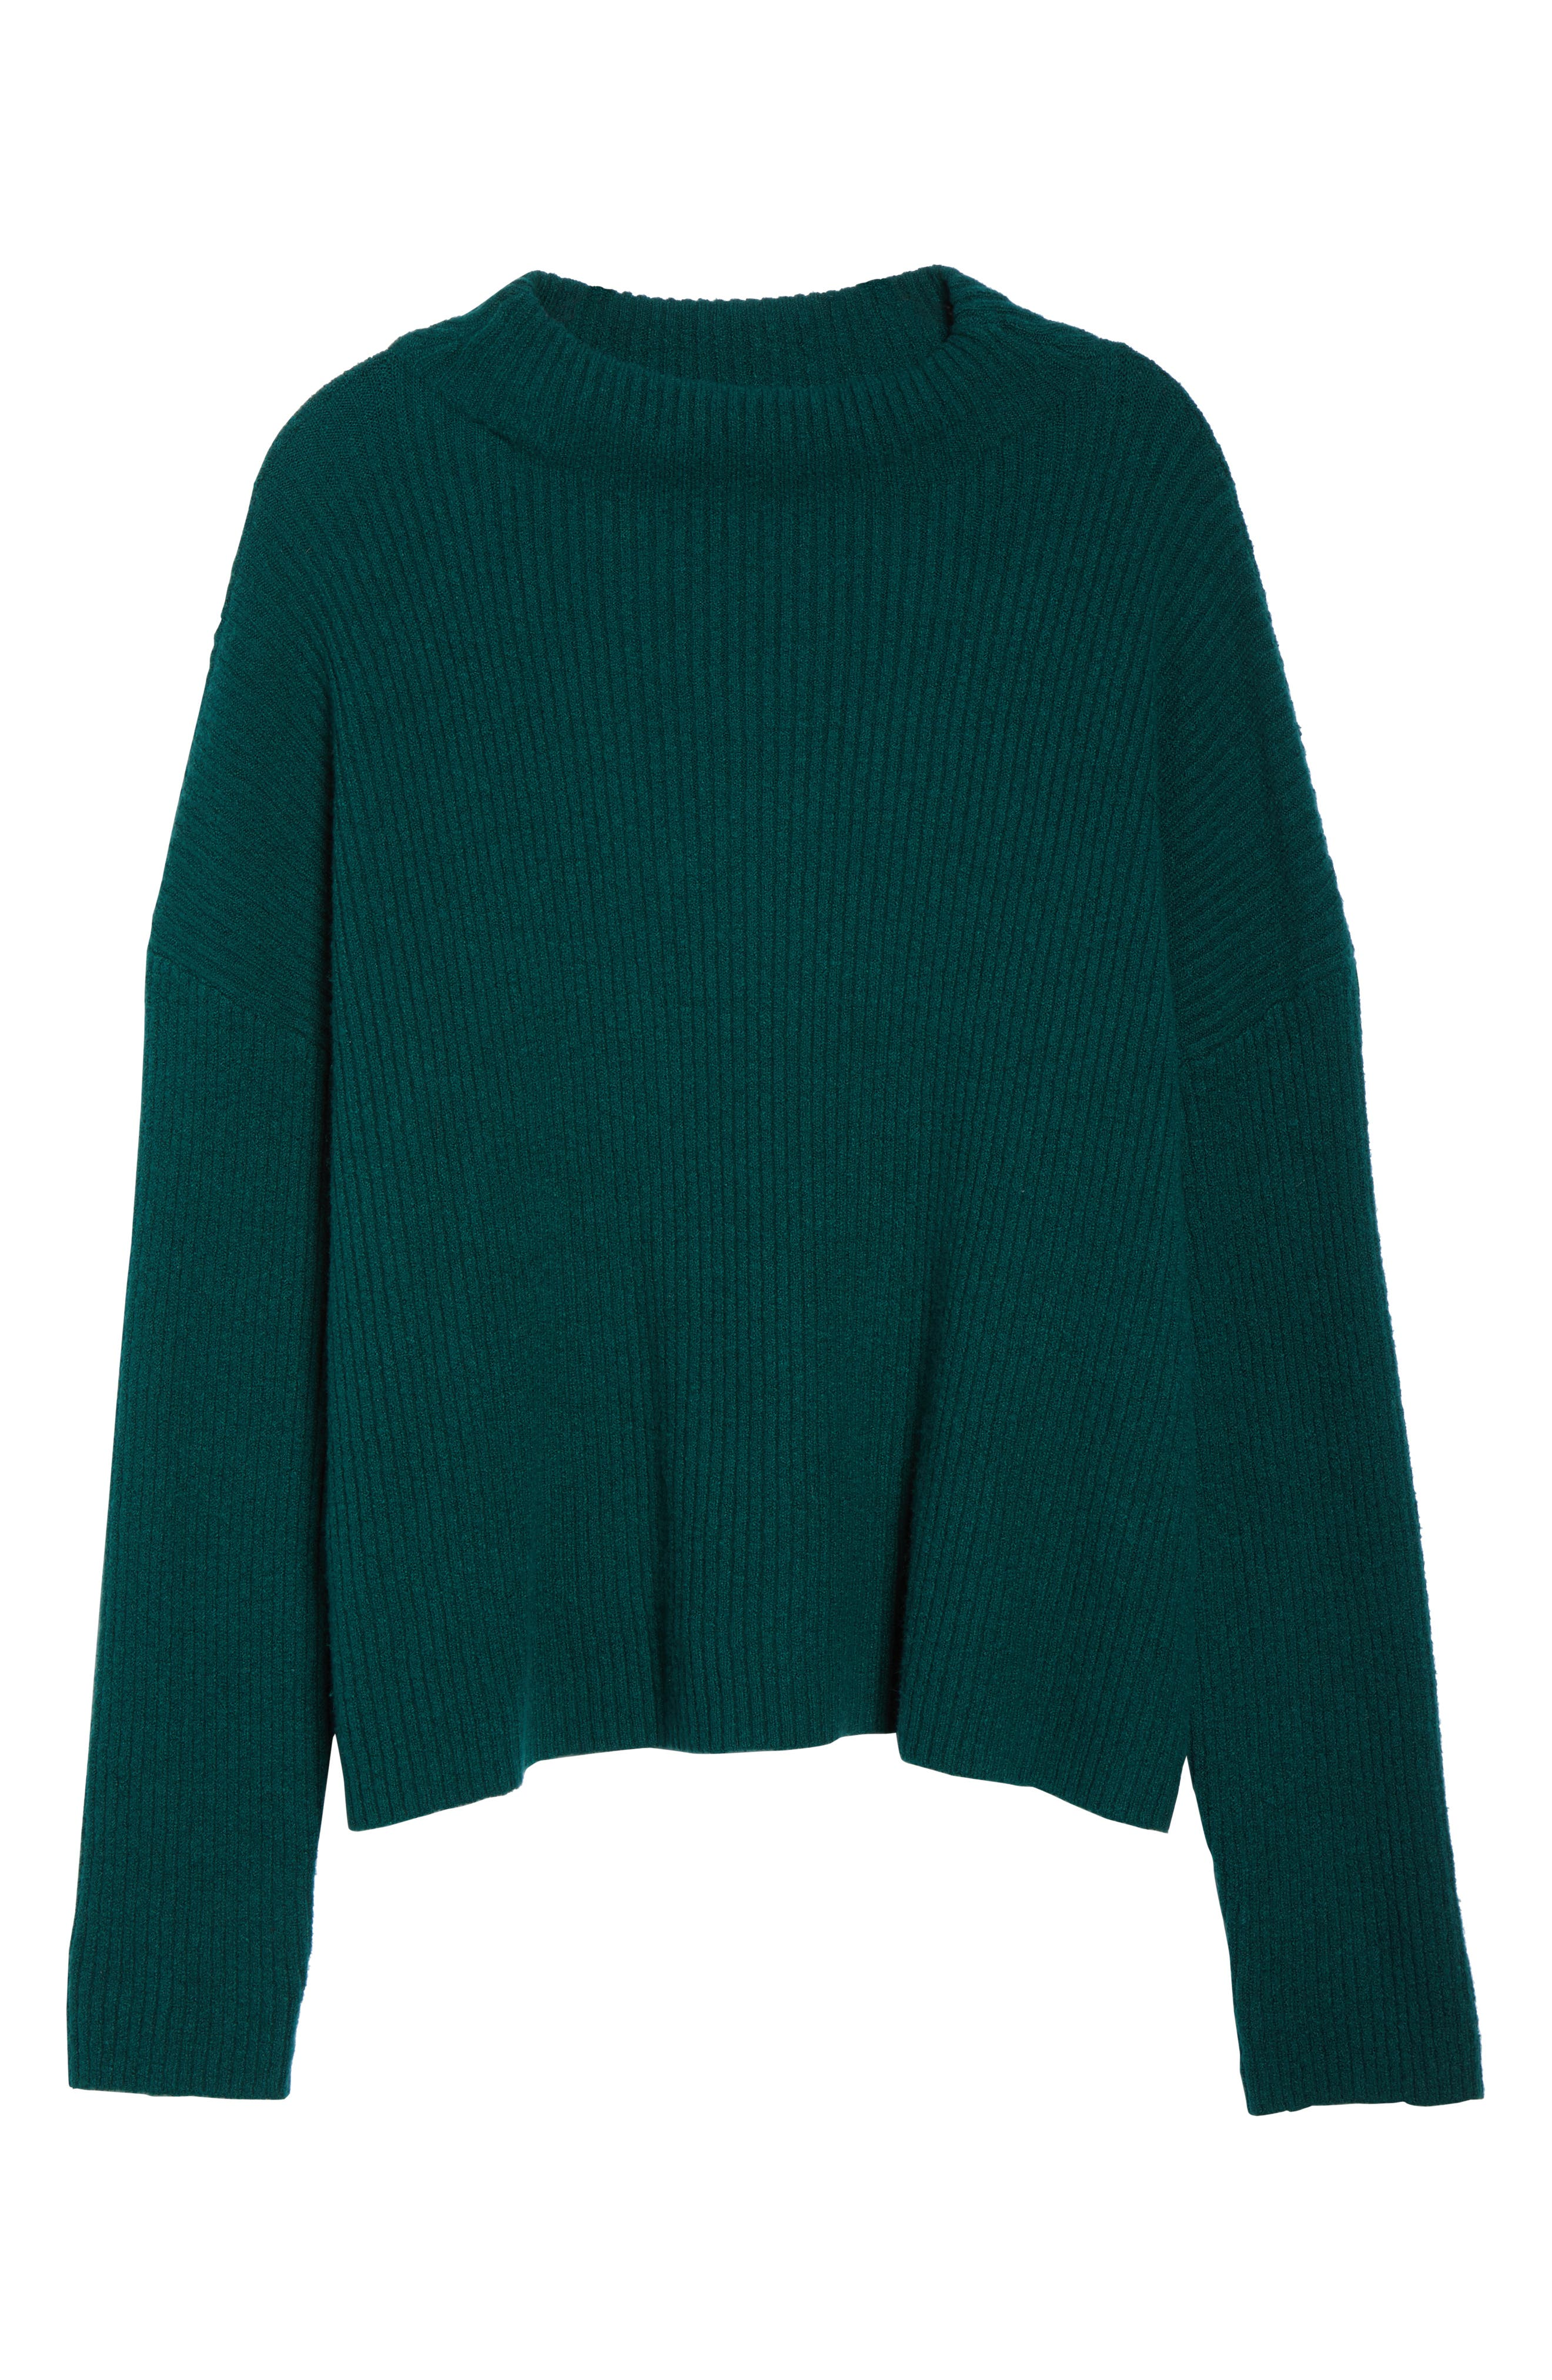 Ribbed Funnel Neck Sweater,                             Alternate thumbnail 6, color,                             GREEN BOTANICAL